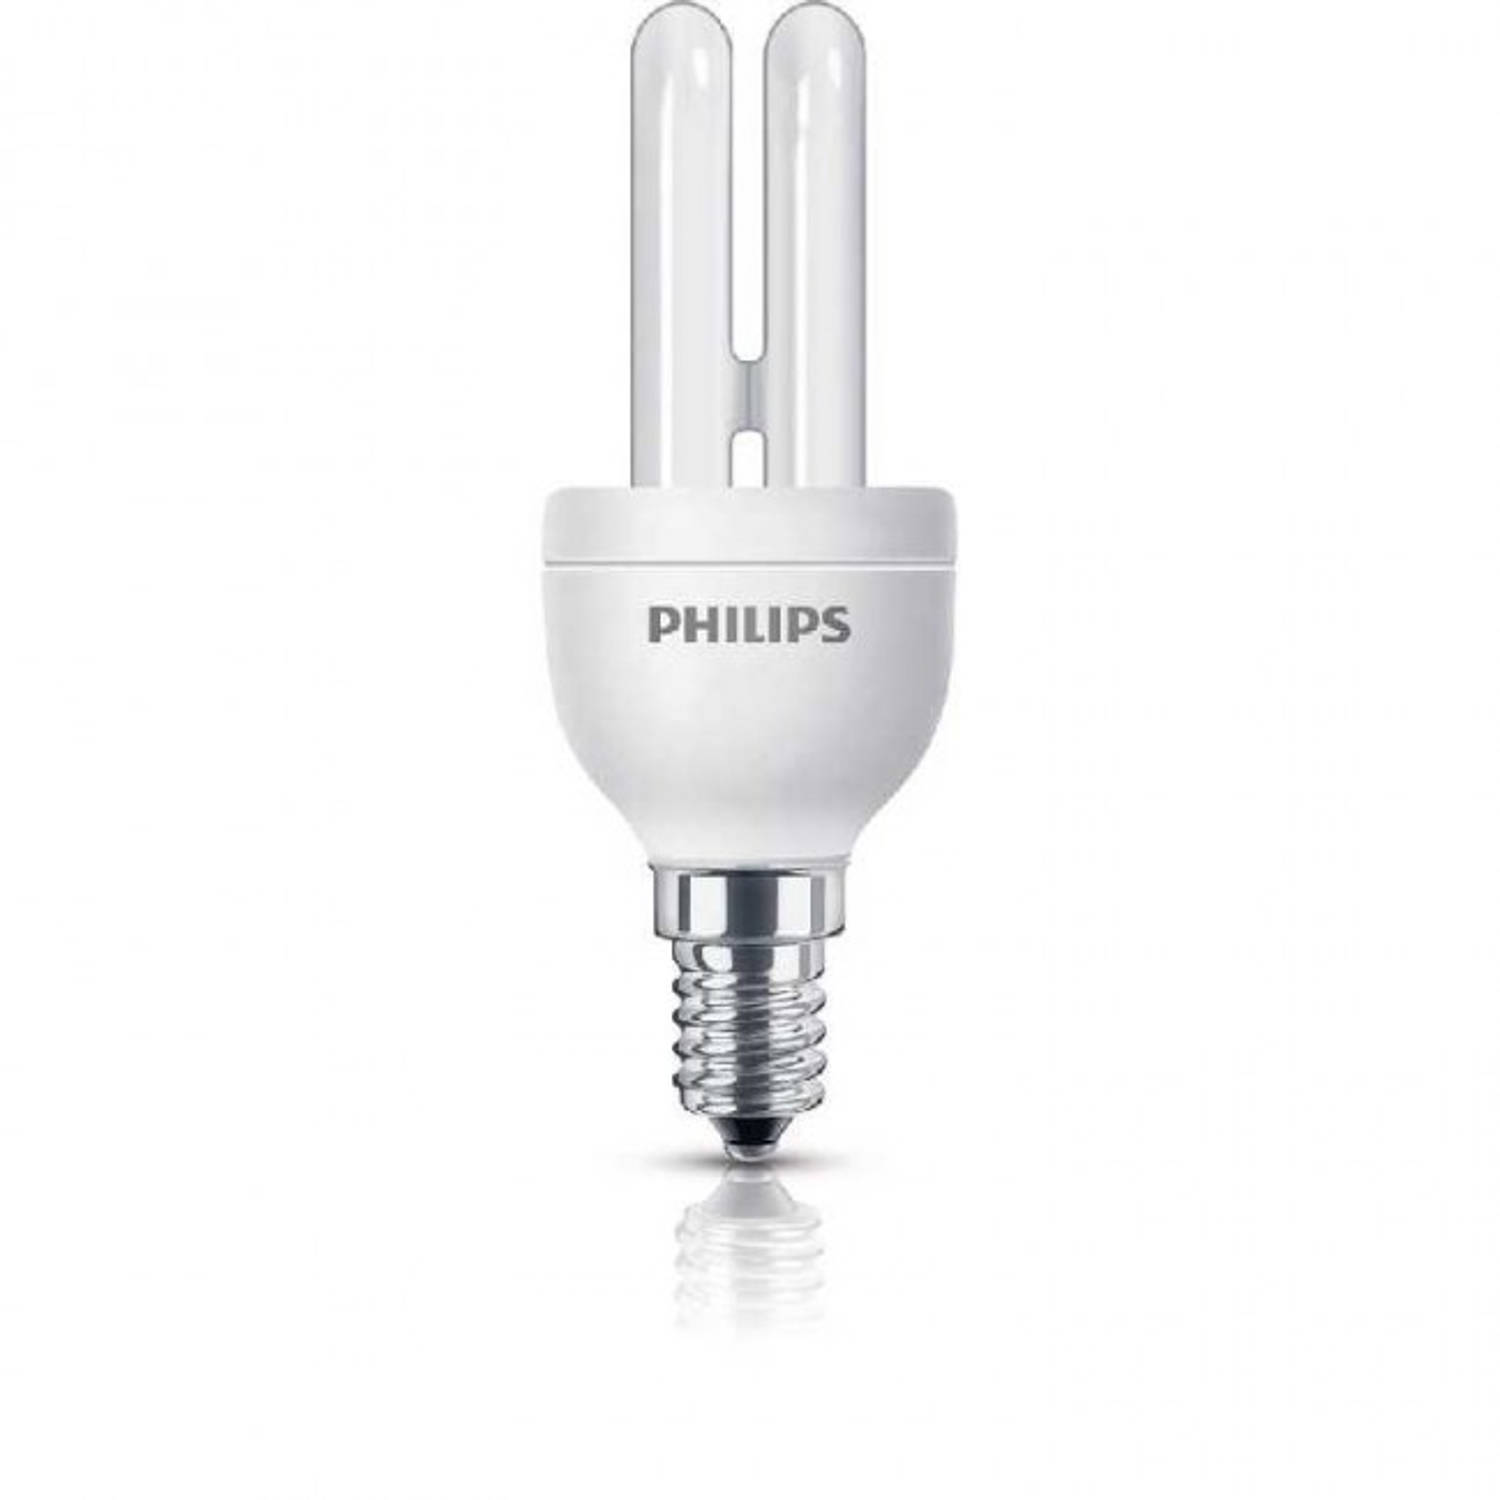 Philips Genie spaarlamp stick 5 W E14 warm wit